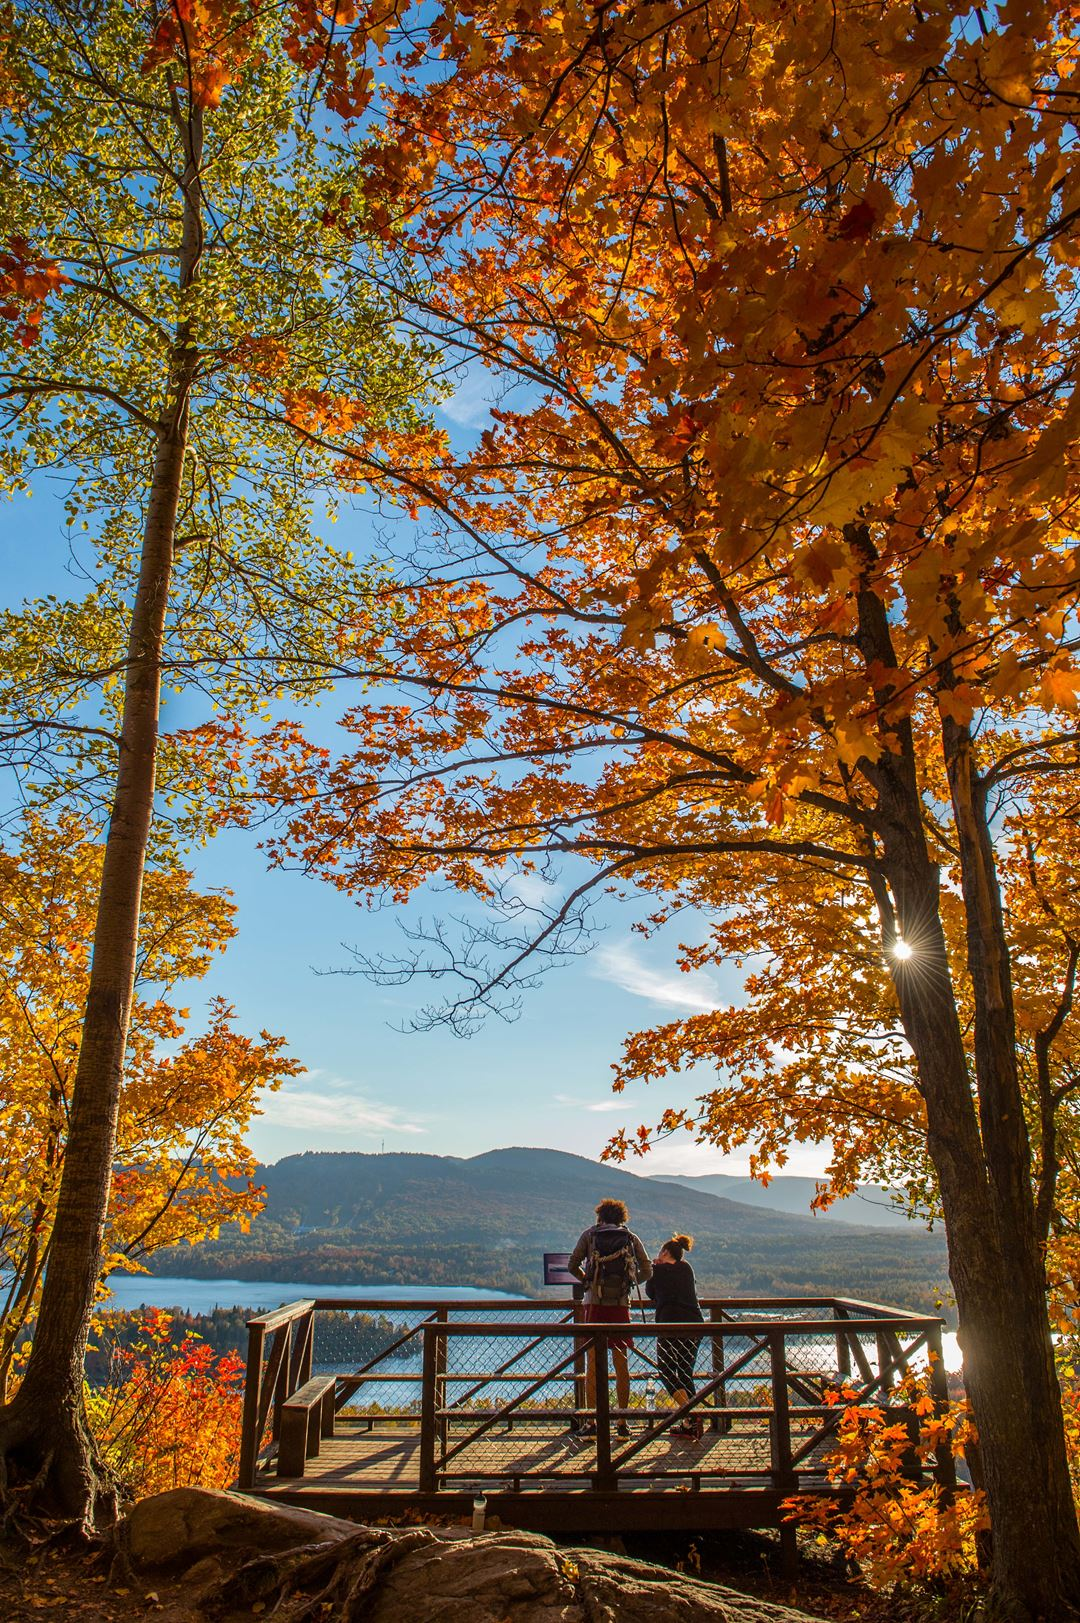 Mont-Sourire in Saint-Donat in autumn